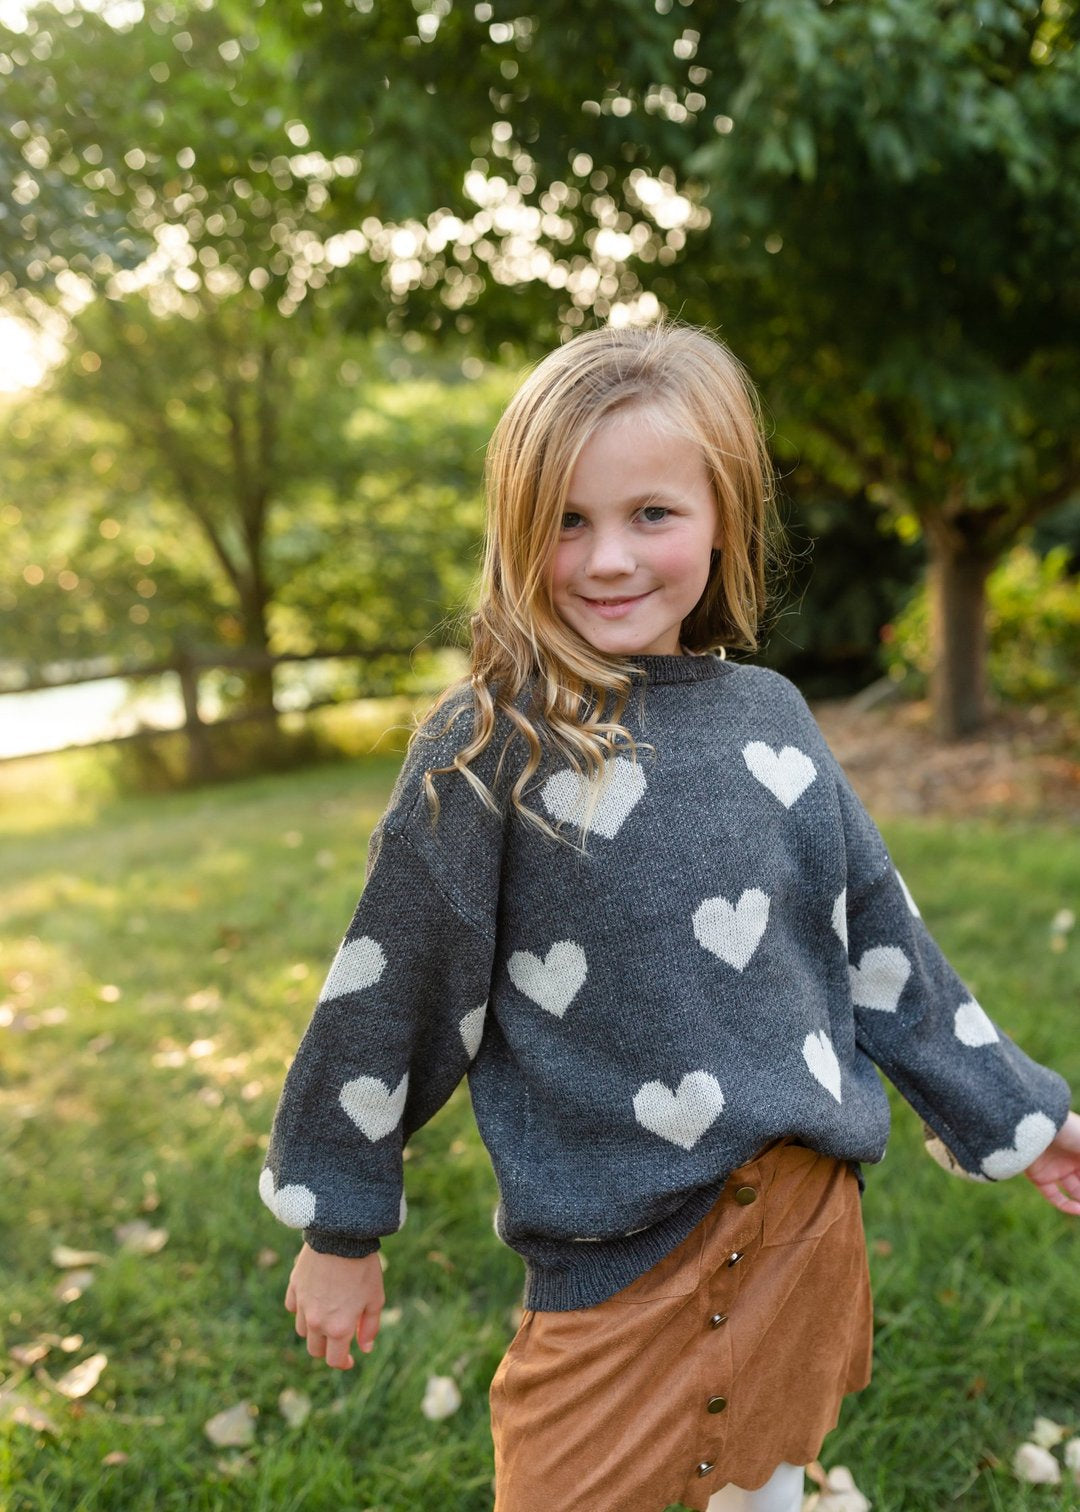 Girls Knitted Heart Pullover Sweater